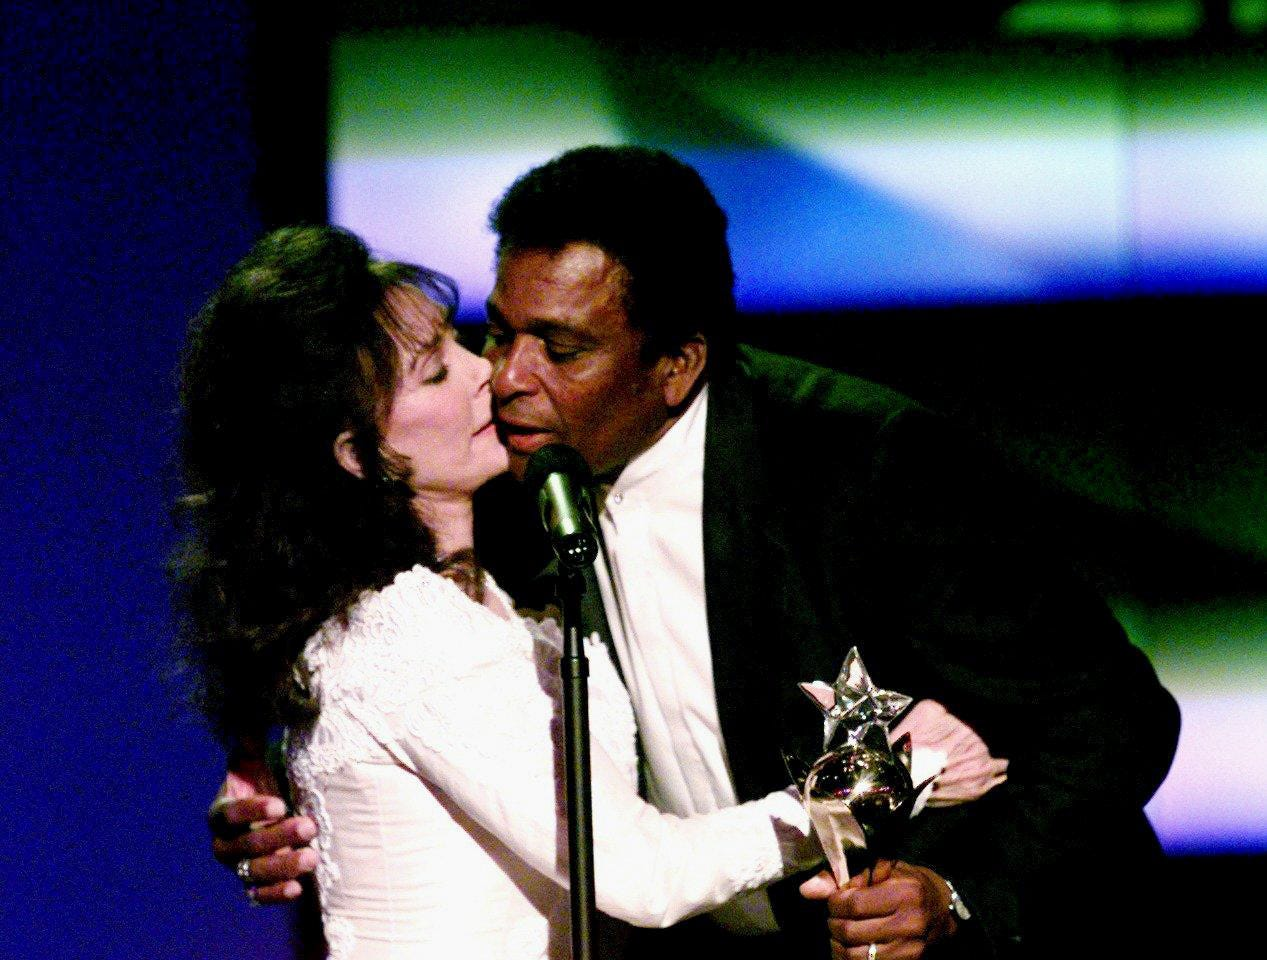 A surprised Charlie Pride, right, accepts the Living Legend award from presenter Loretta Lynn at the 31st TNN/Music City News Award show at the Grand Ole Opry House June 16, 1997.